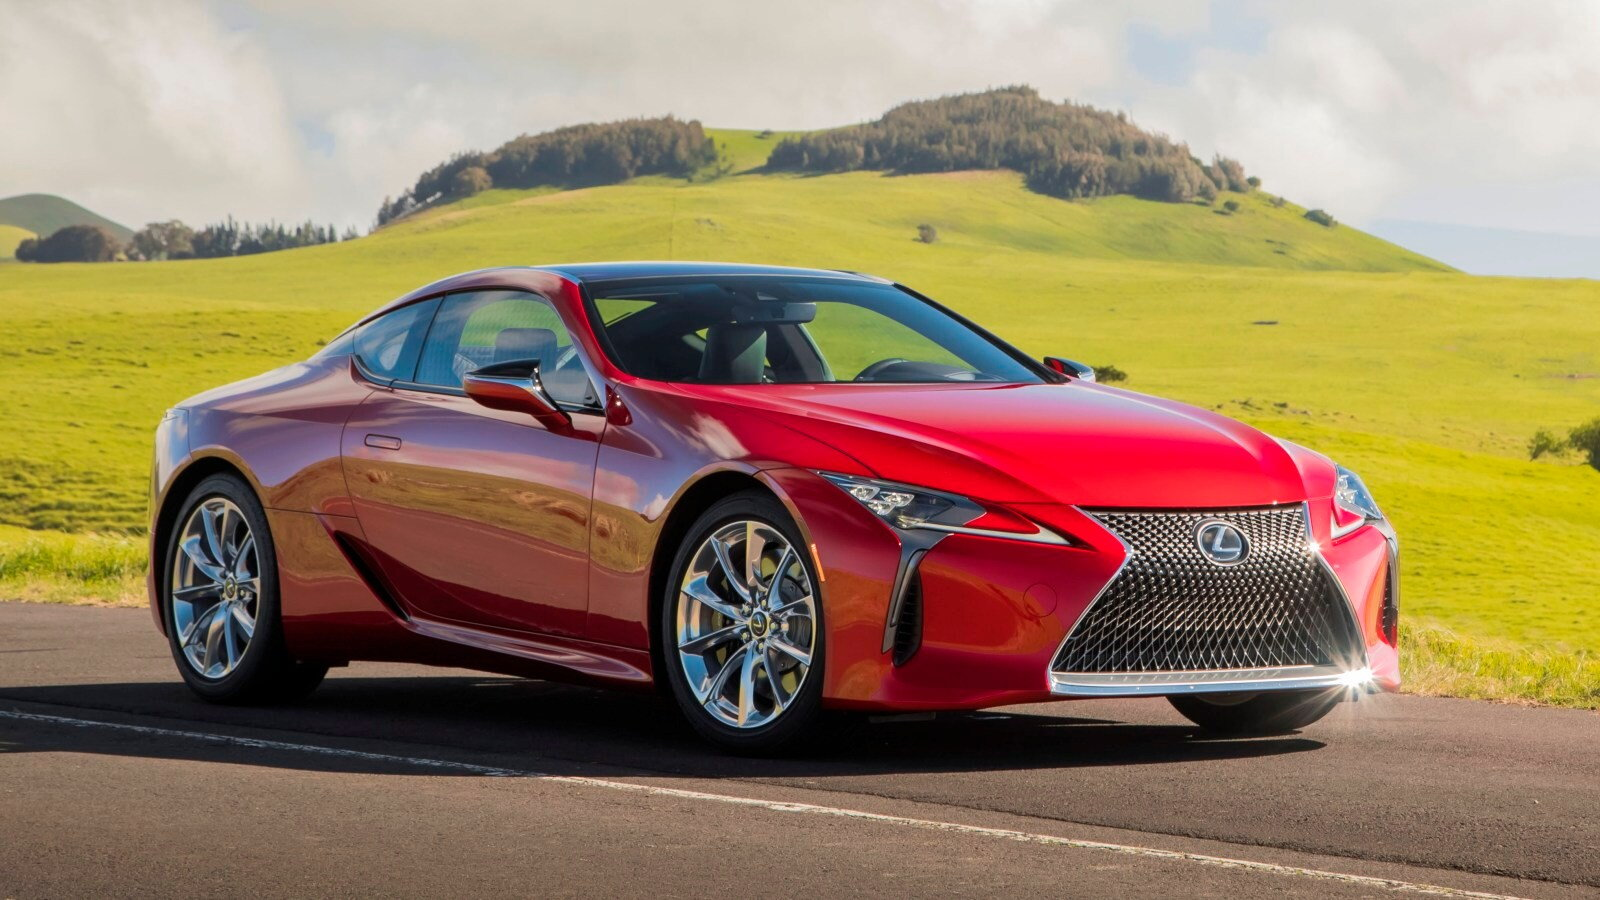 Lc500 Brings A New Wave Of Modified Lexus Clublexus